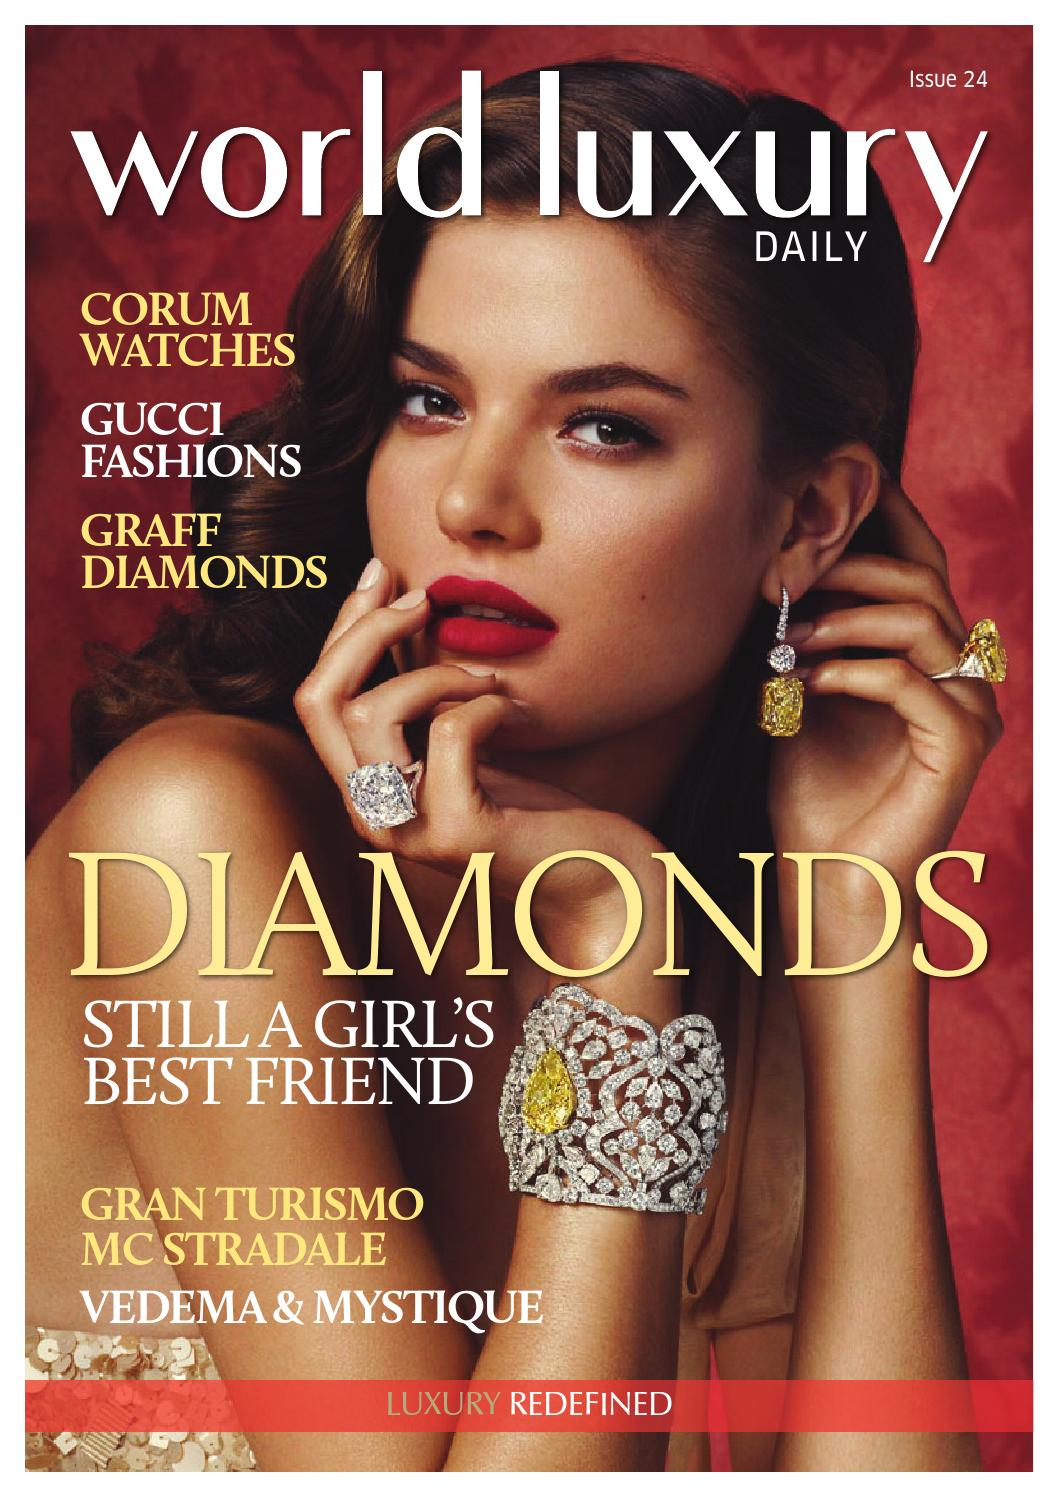 World Luxury Daily - Issue 24